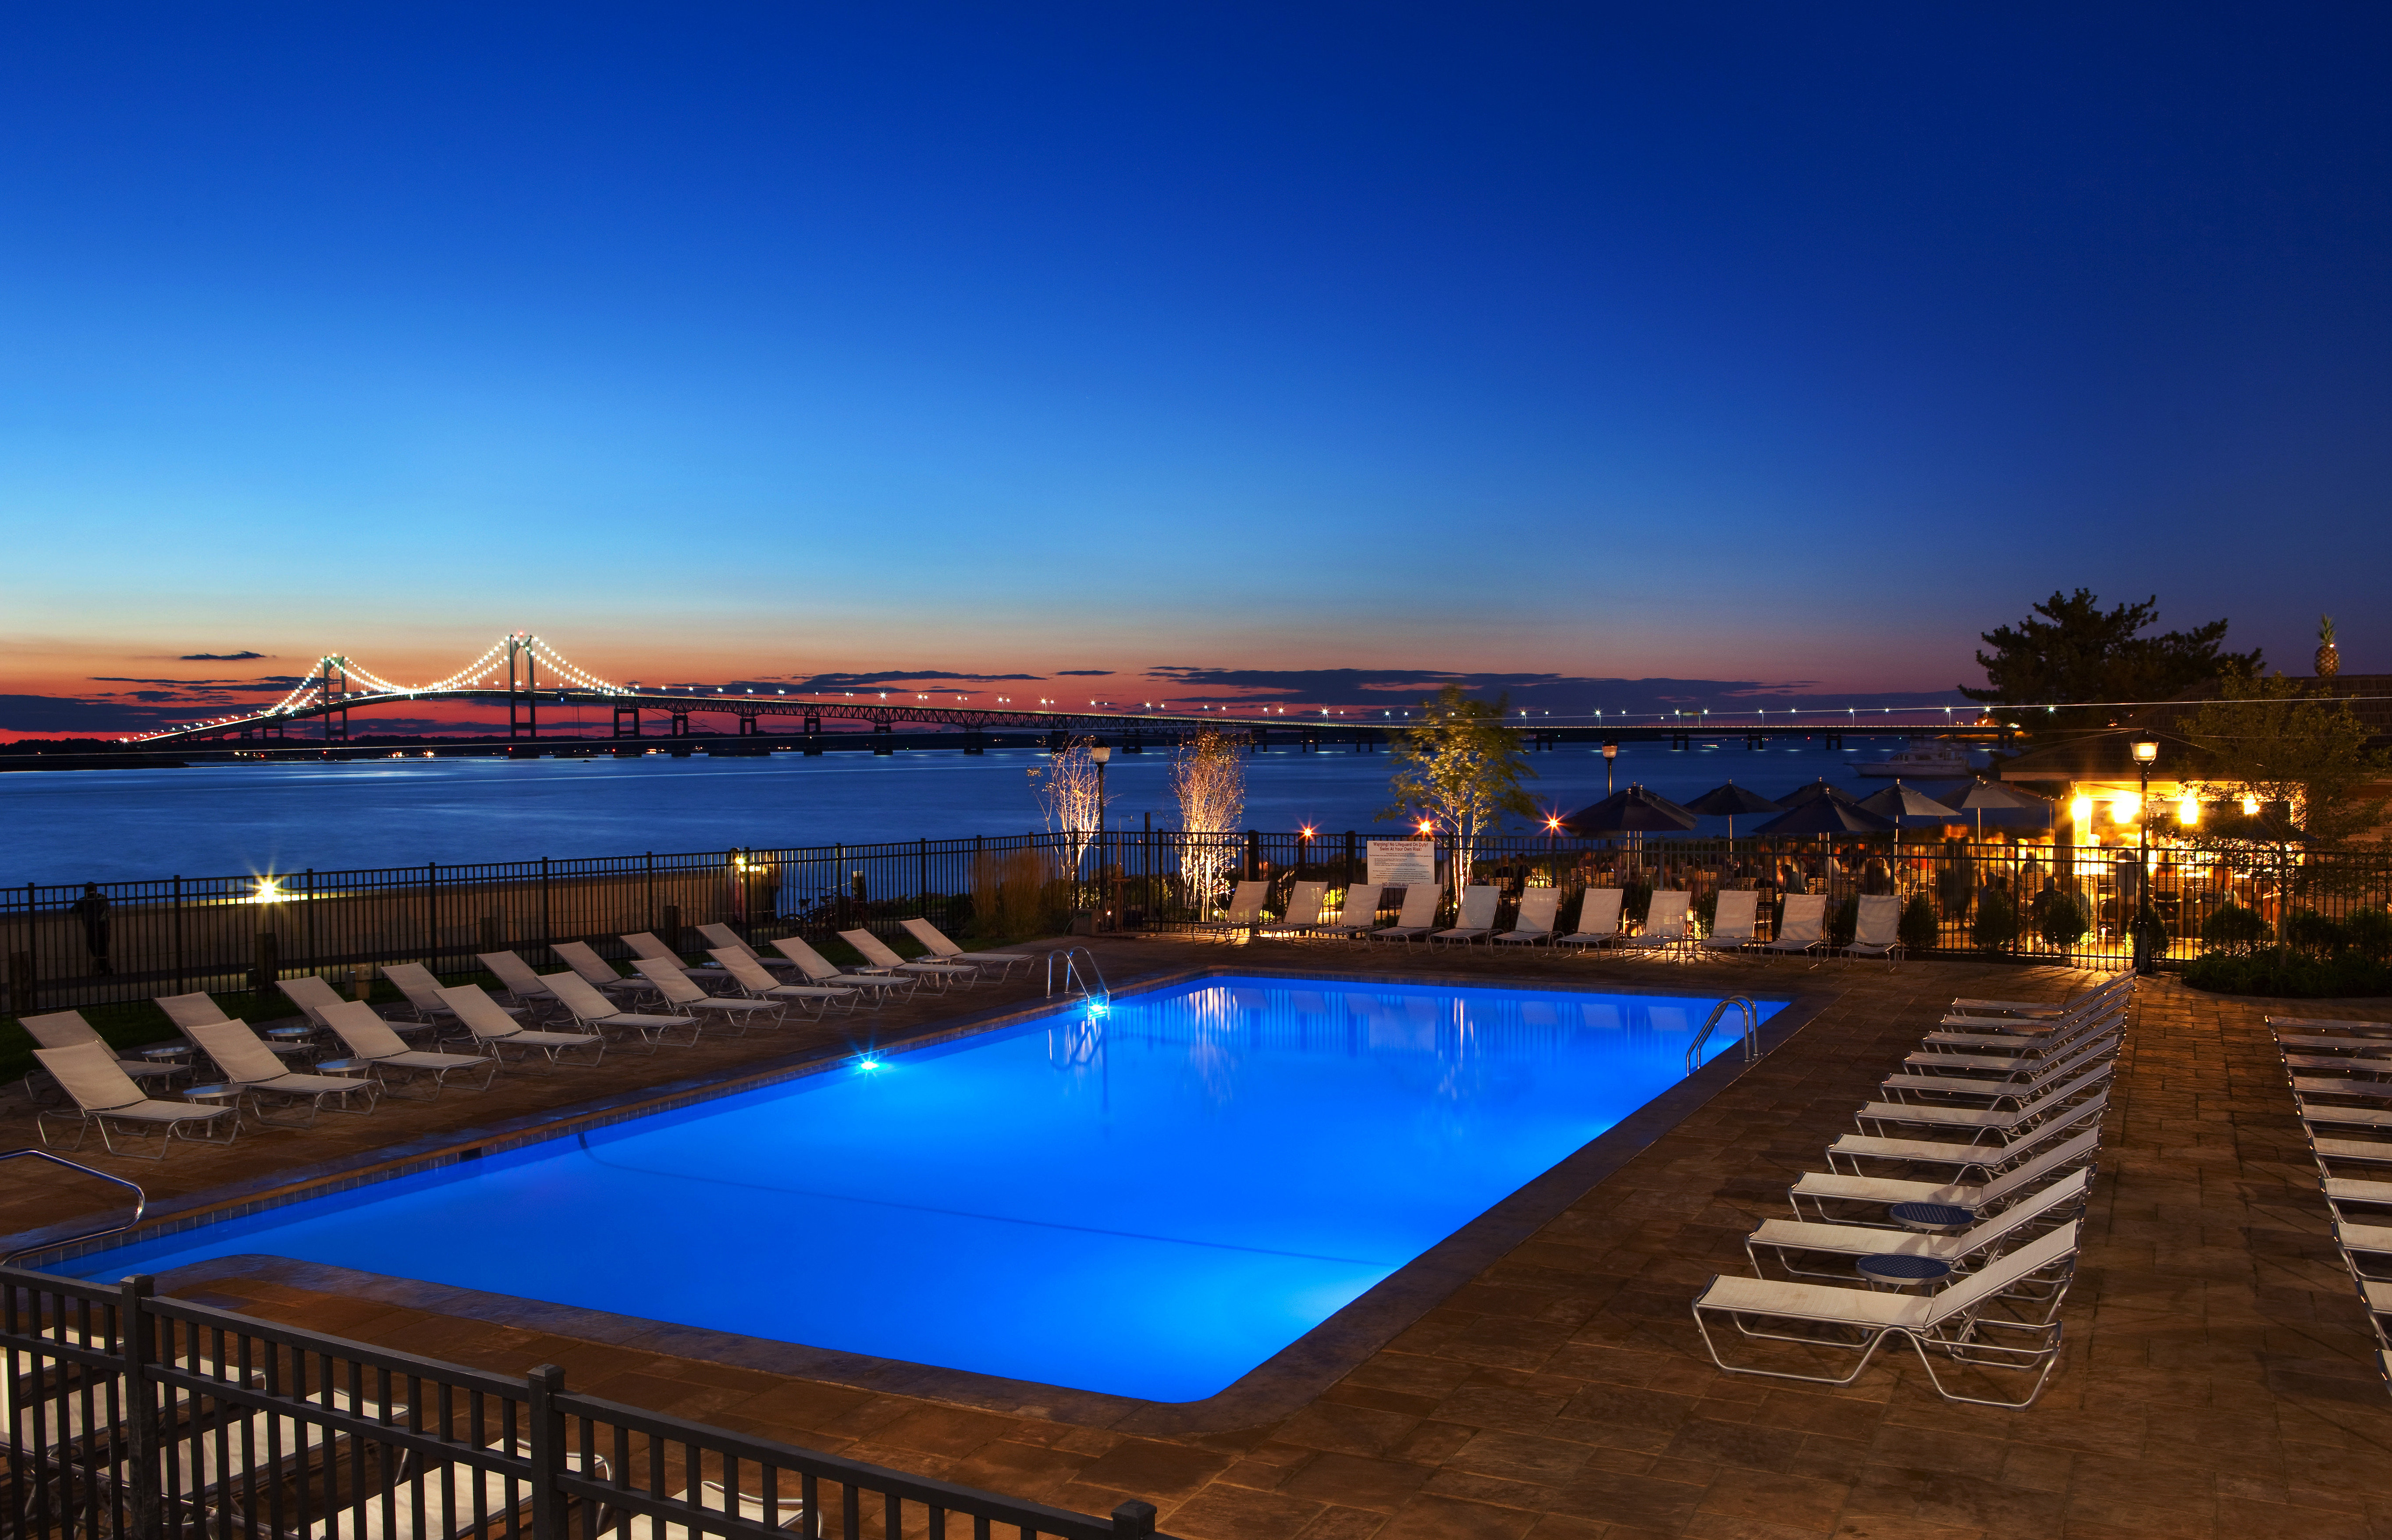 Outdoors Pool Scenic views Waterfront sky water swimming pool pier Resort scene evening dusk marina lined swimming